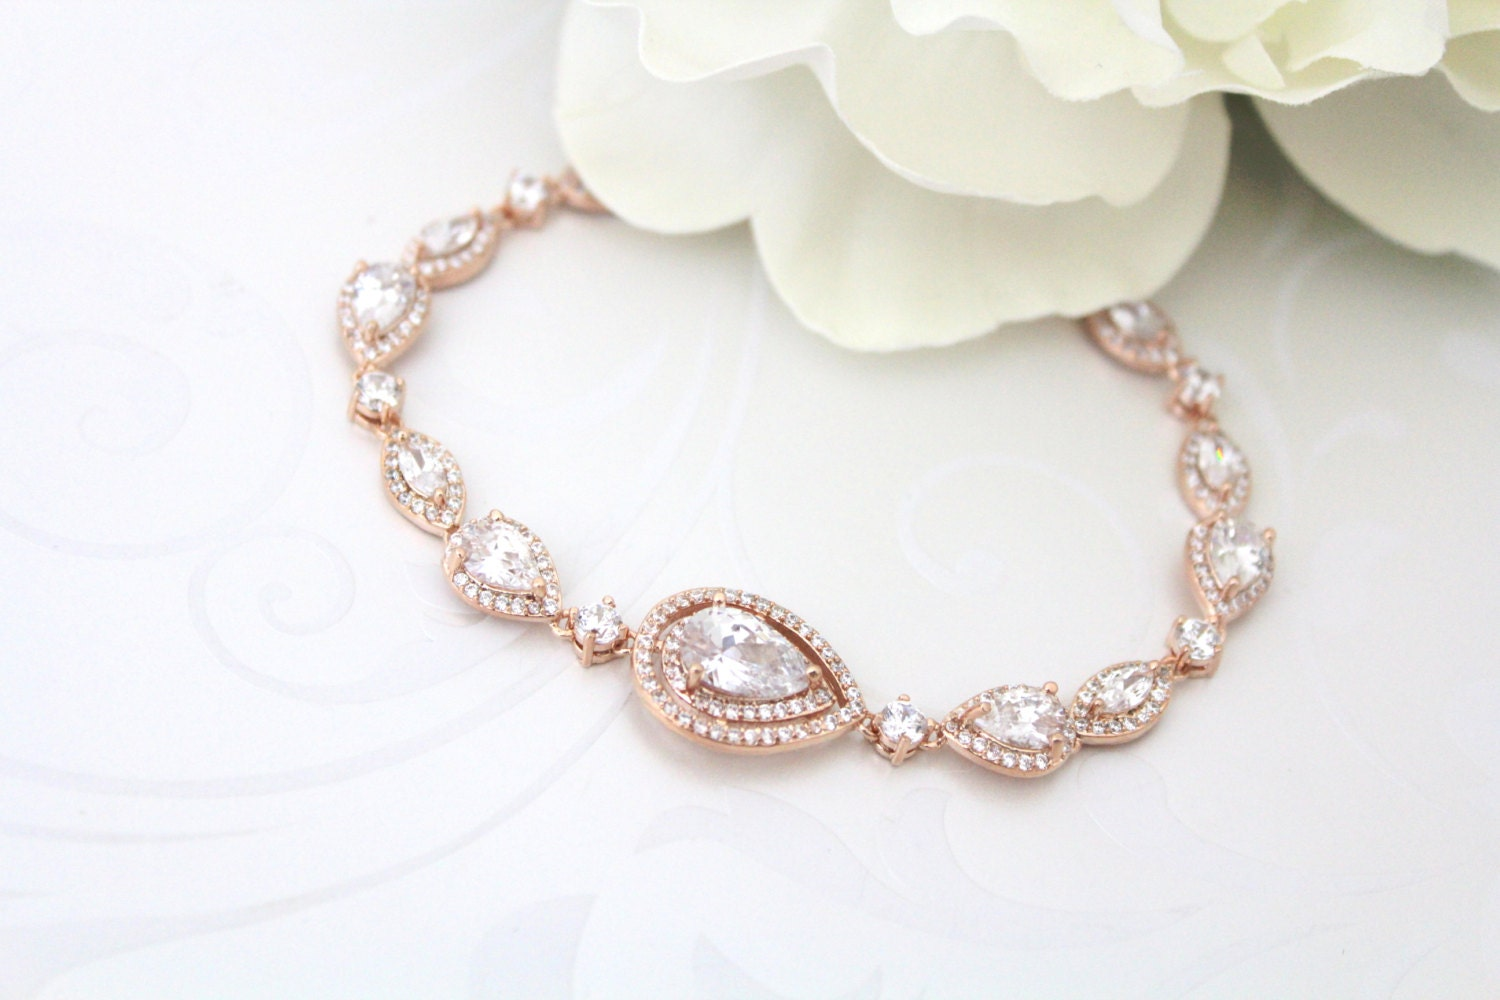 Rose Gold Bracelet Crystal Bridal Bracelet Wedding Jewelry